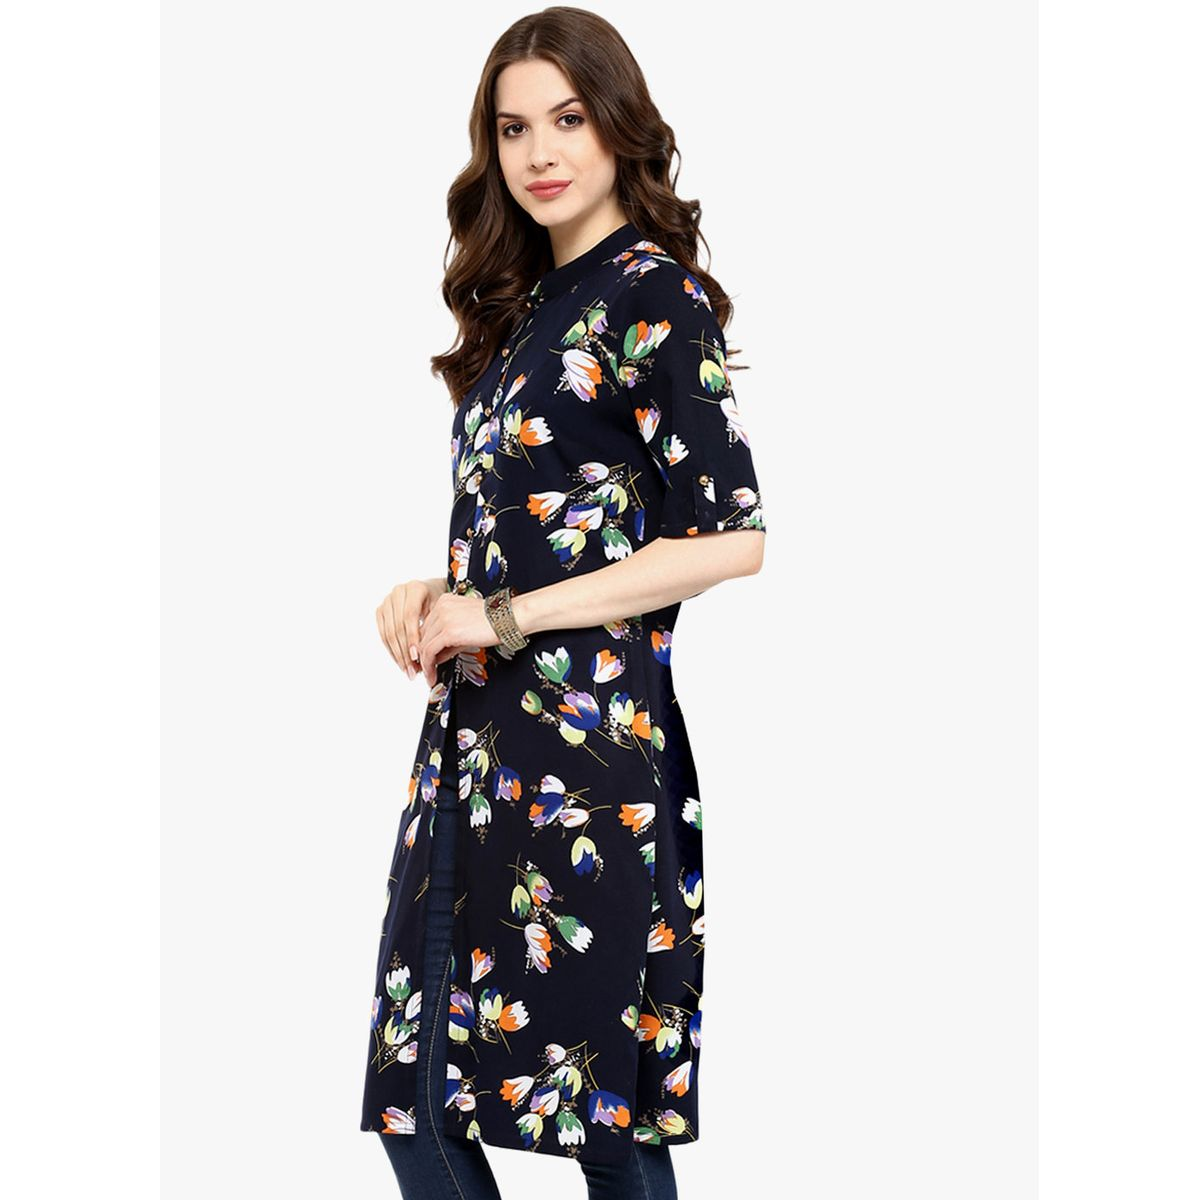 THE BEBO BLUE FLORAL PURE CREPE ELEGANT KURTI